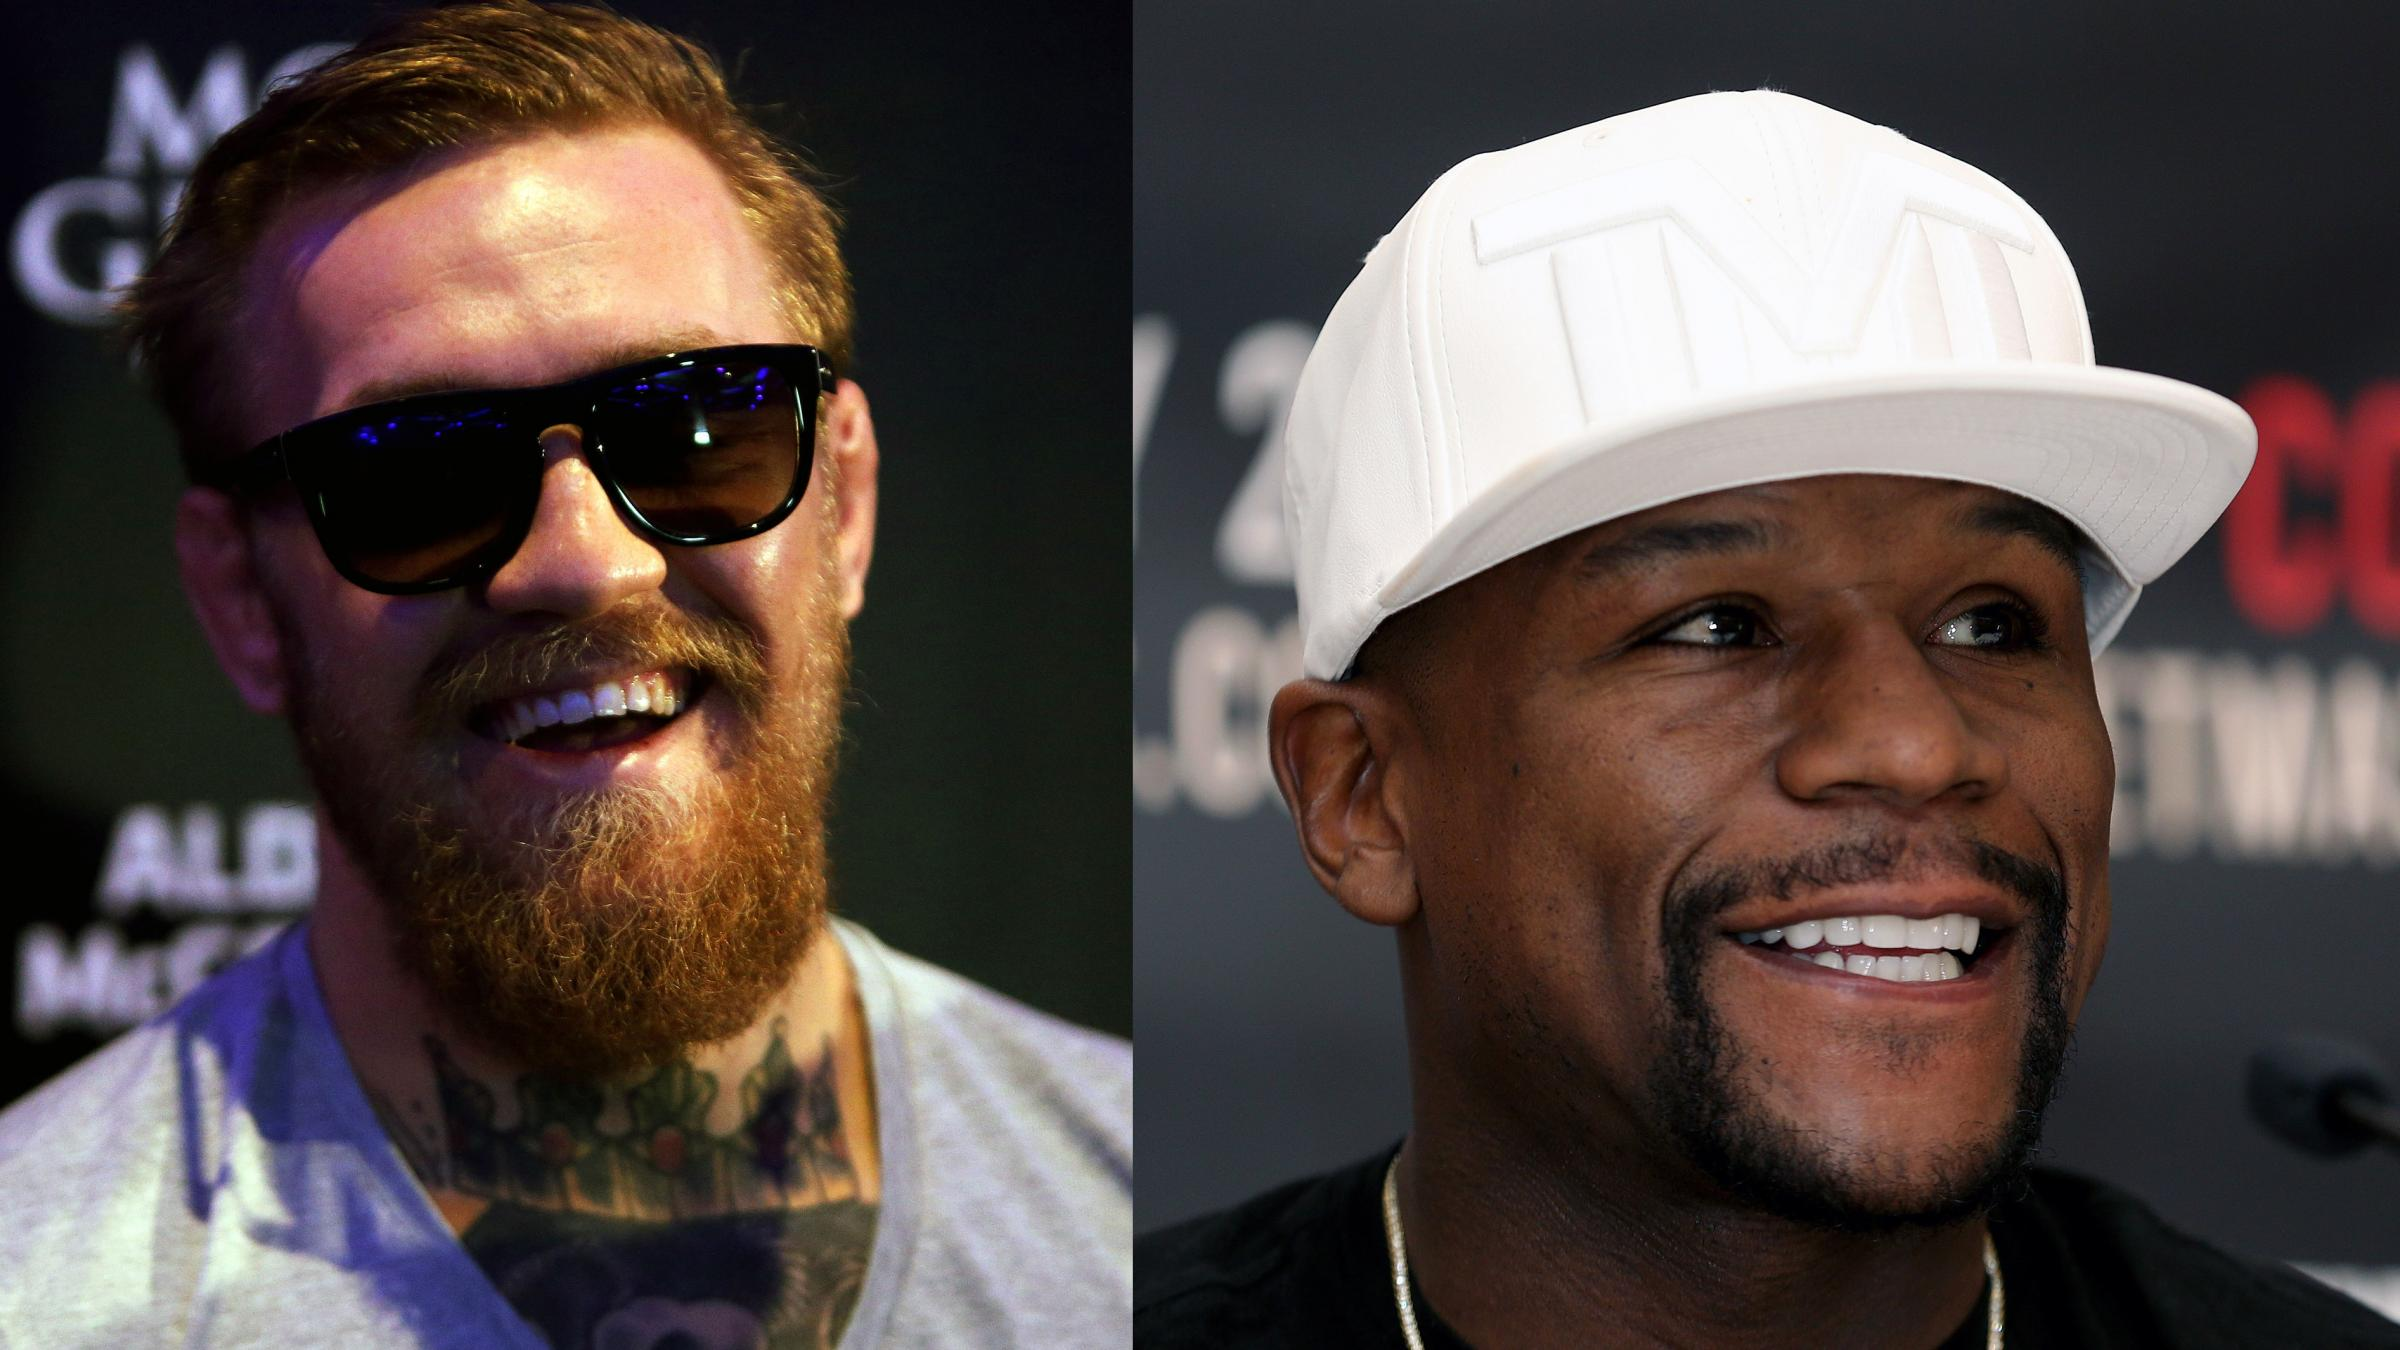 Floyd Mayweather Jr. to fight UFC star Conor McGregor on Aug. 26